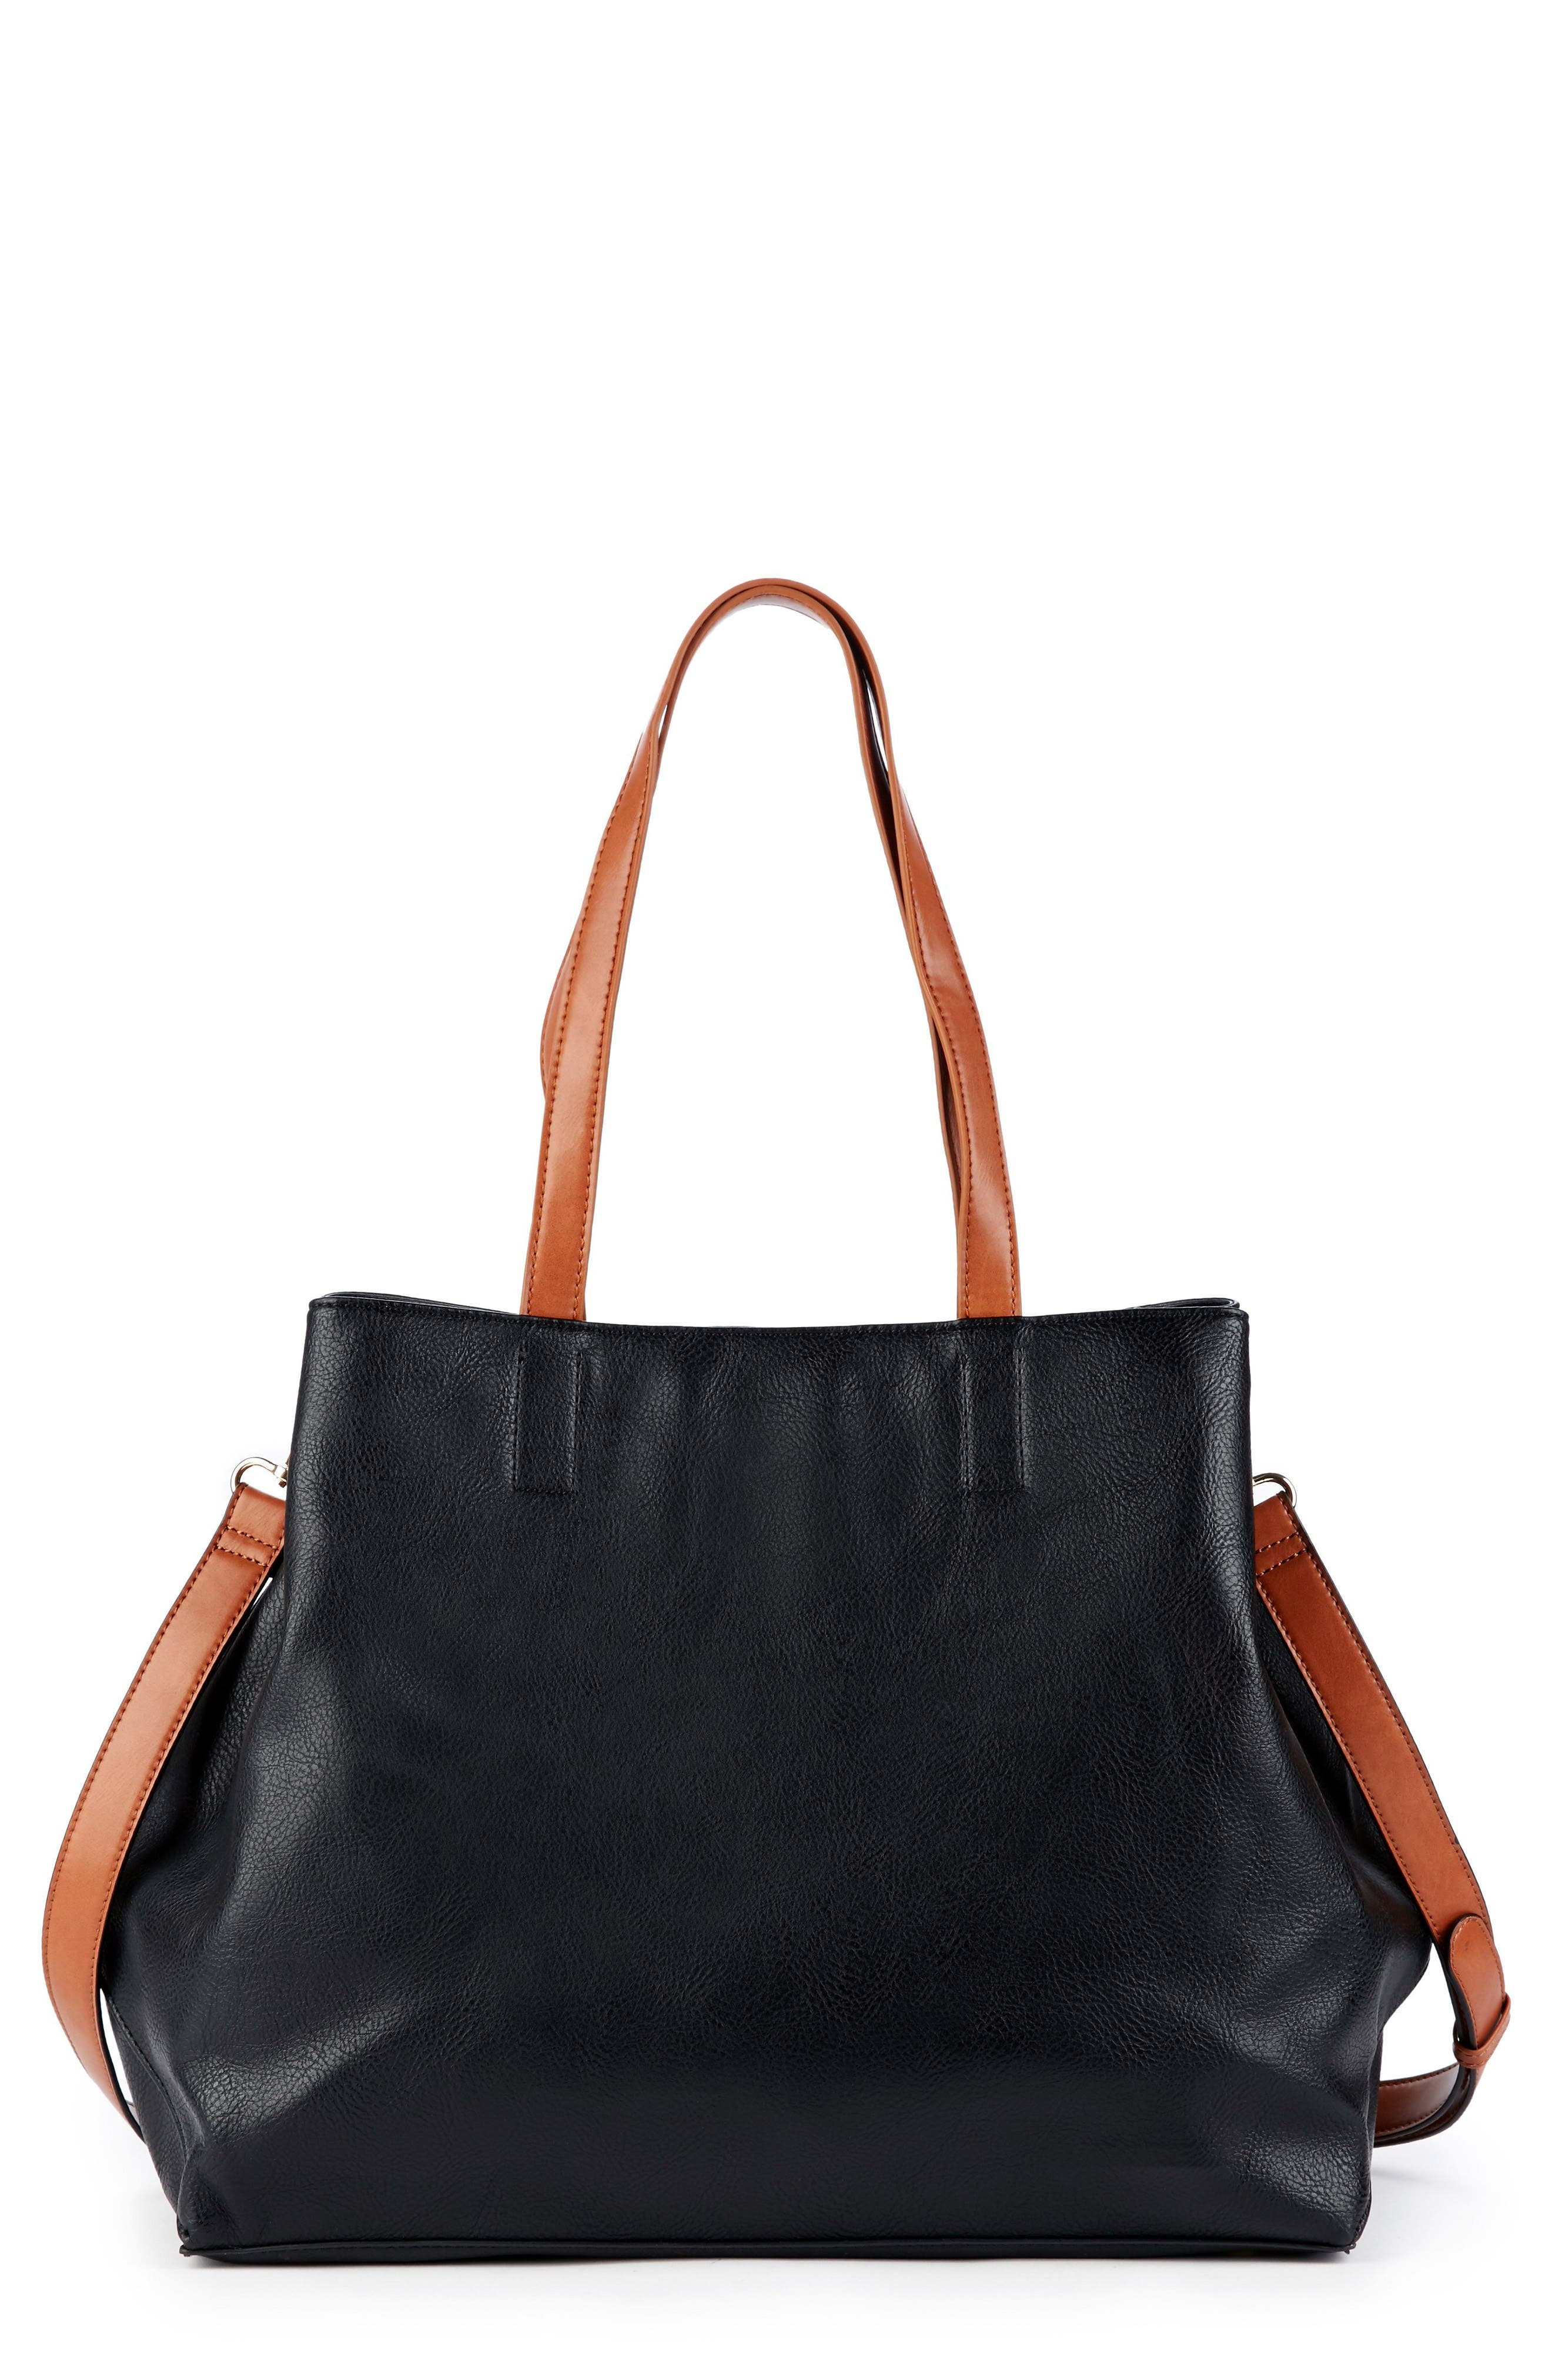 Hester Faux Leather Tote,                         Main,                         color, 001